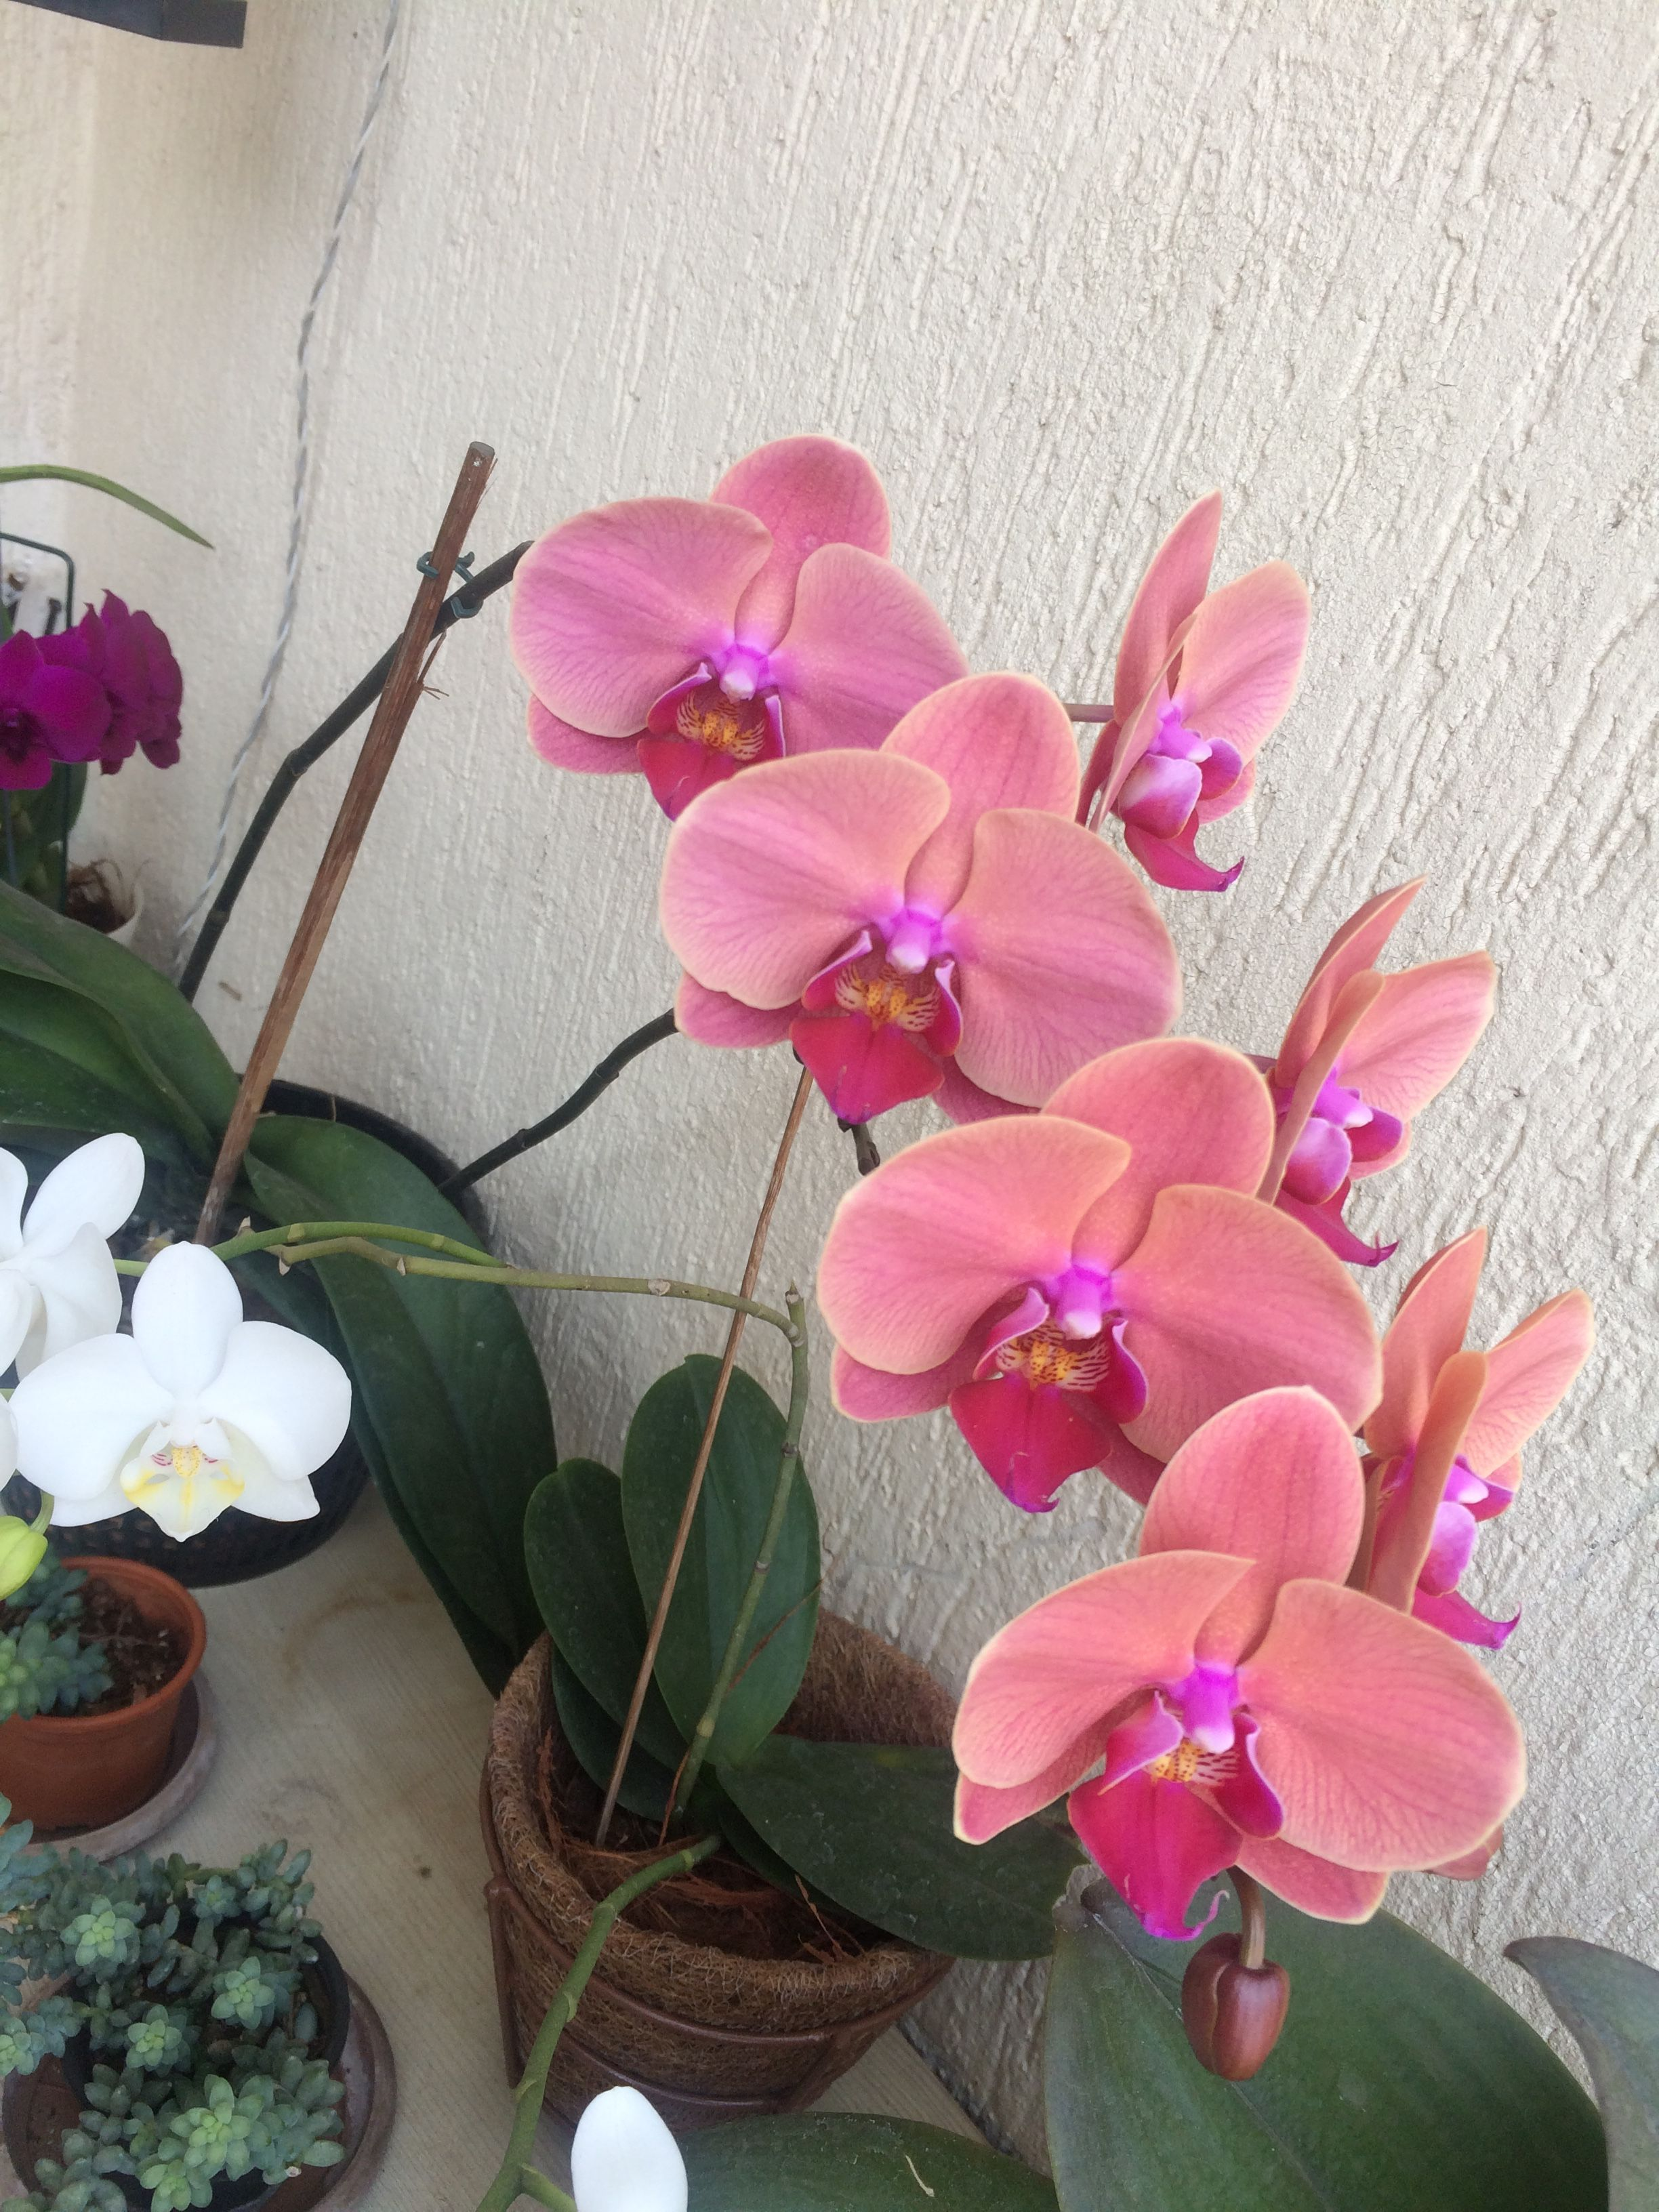 My orchids Flowers Pinterest Orchids and Flowers